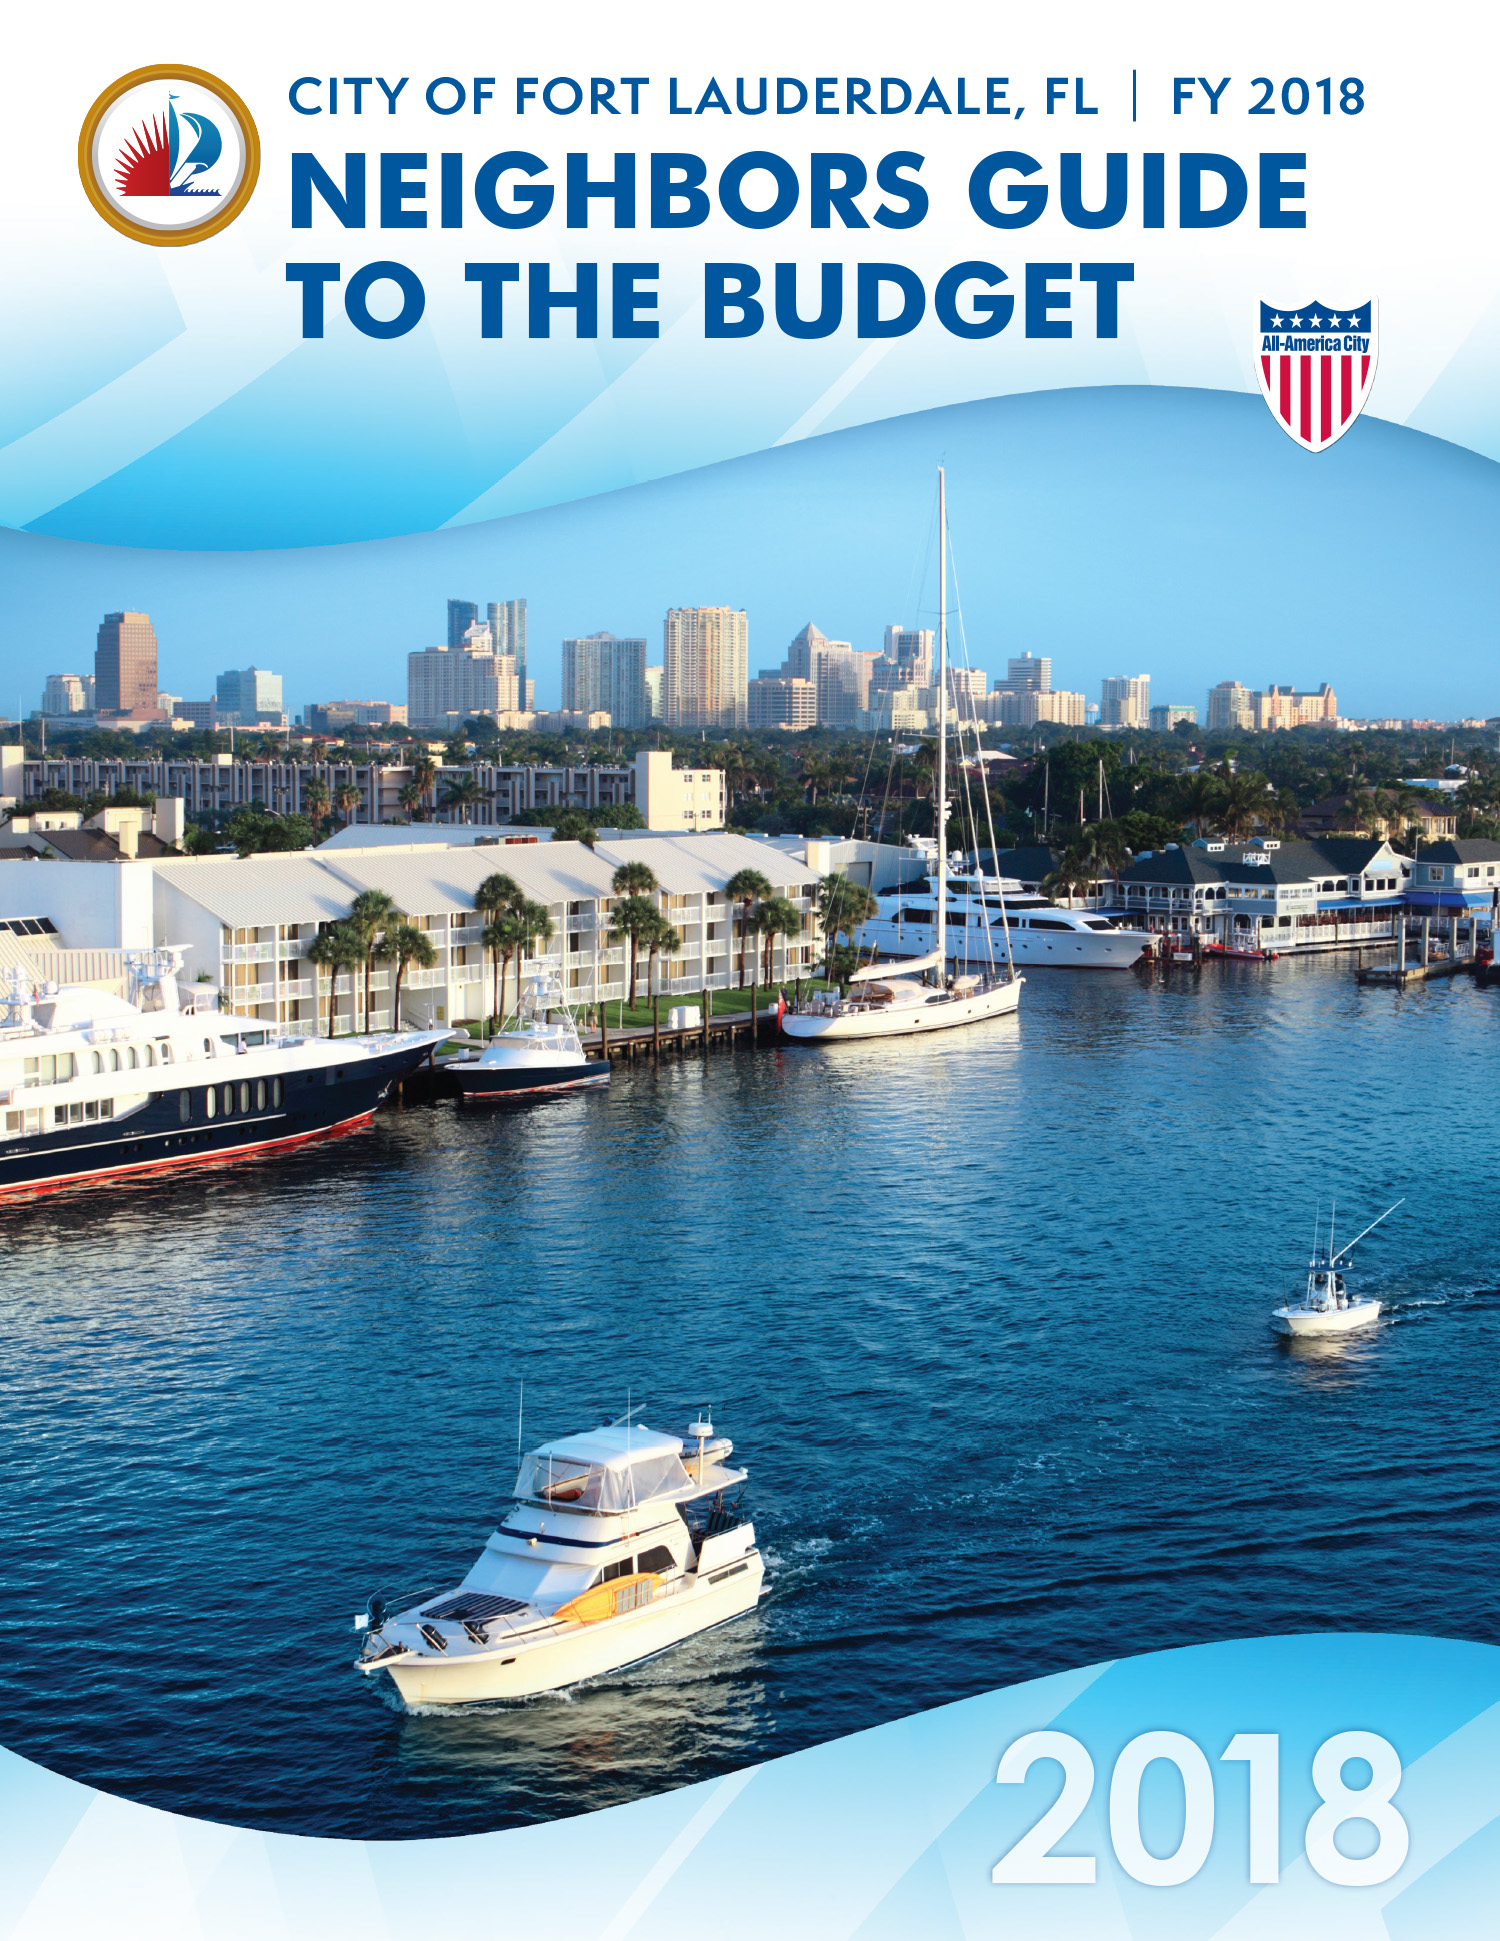 City of fort lauderdale fl annual budgets fy 2018 neighbors guide to the budget pdf geenschuldenfo Images